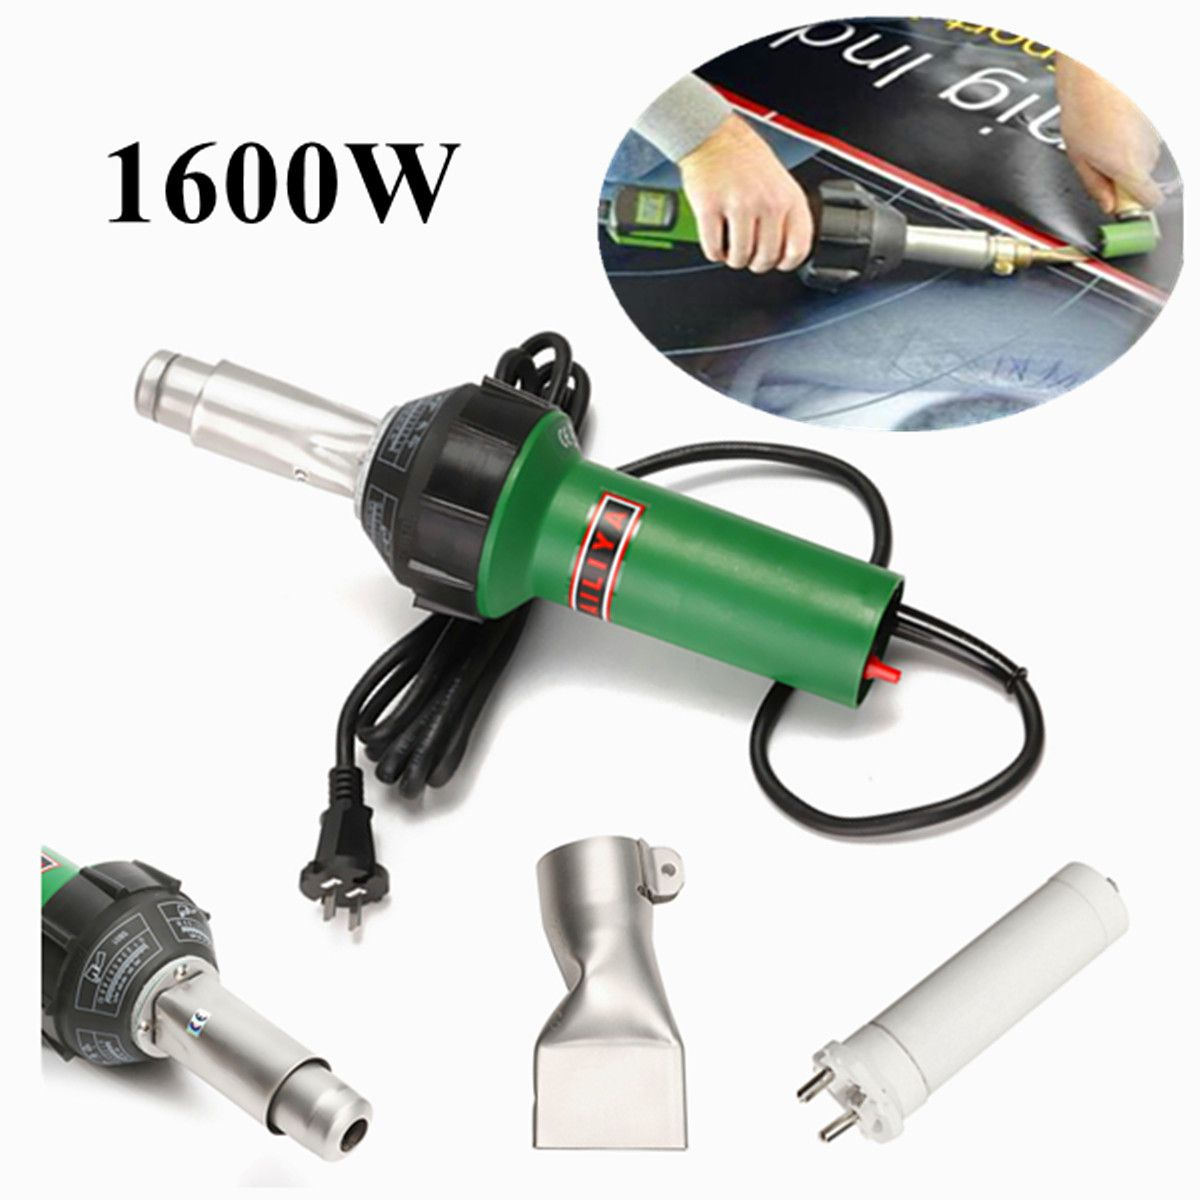 1600W AC 220V 50/60Hz Hot Air Torch Plastic Welding-Gun For Welder + Flat Nose Wholesale Price High Quality